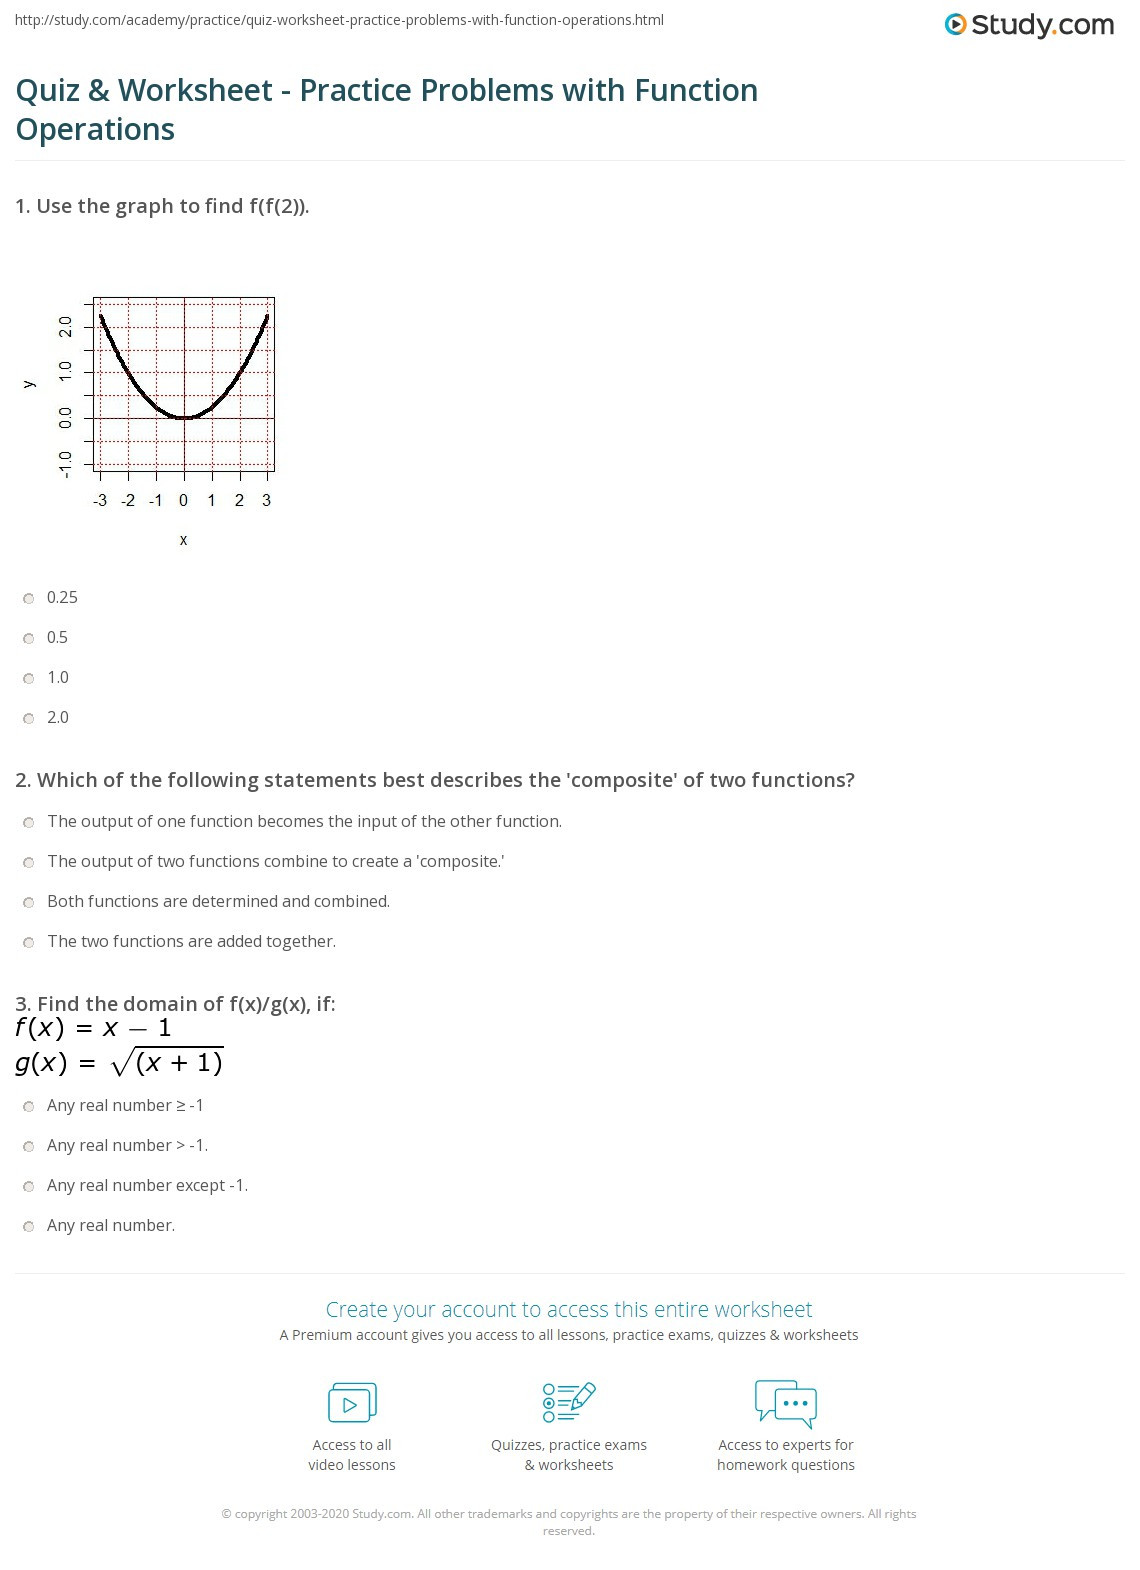 Composite Function Worksheet Answers Quiz & Worksheet Practice Problems with Function